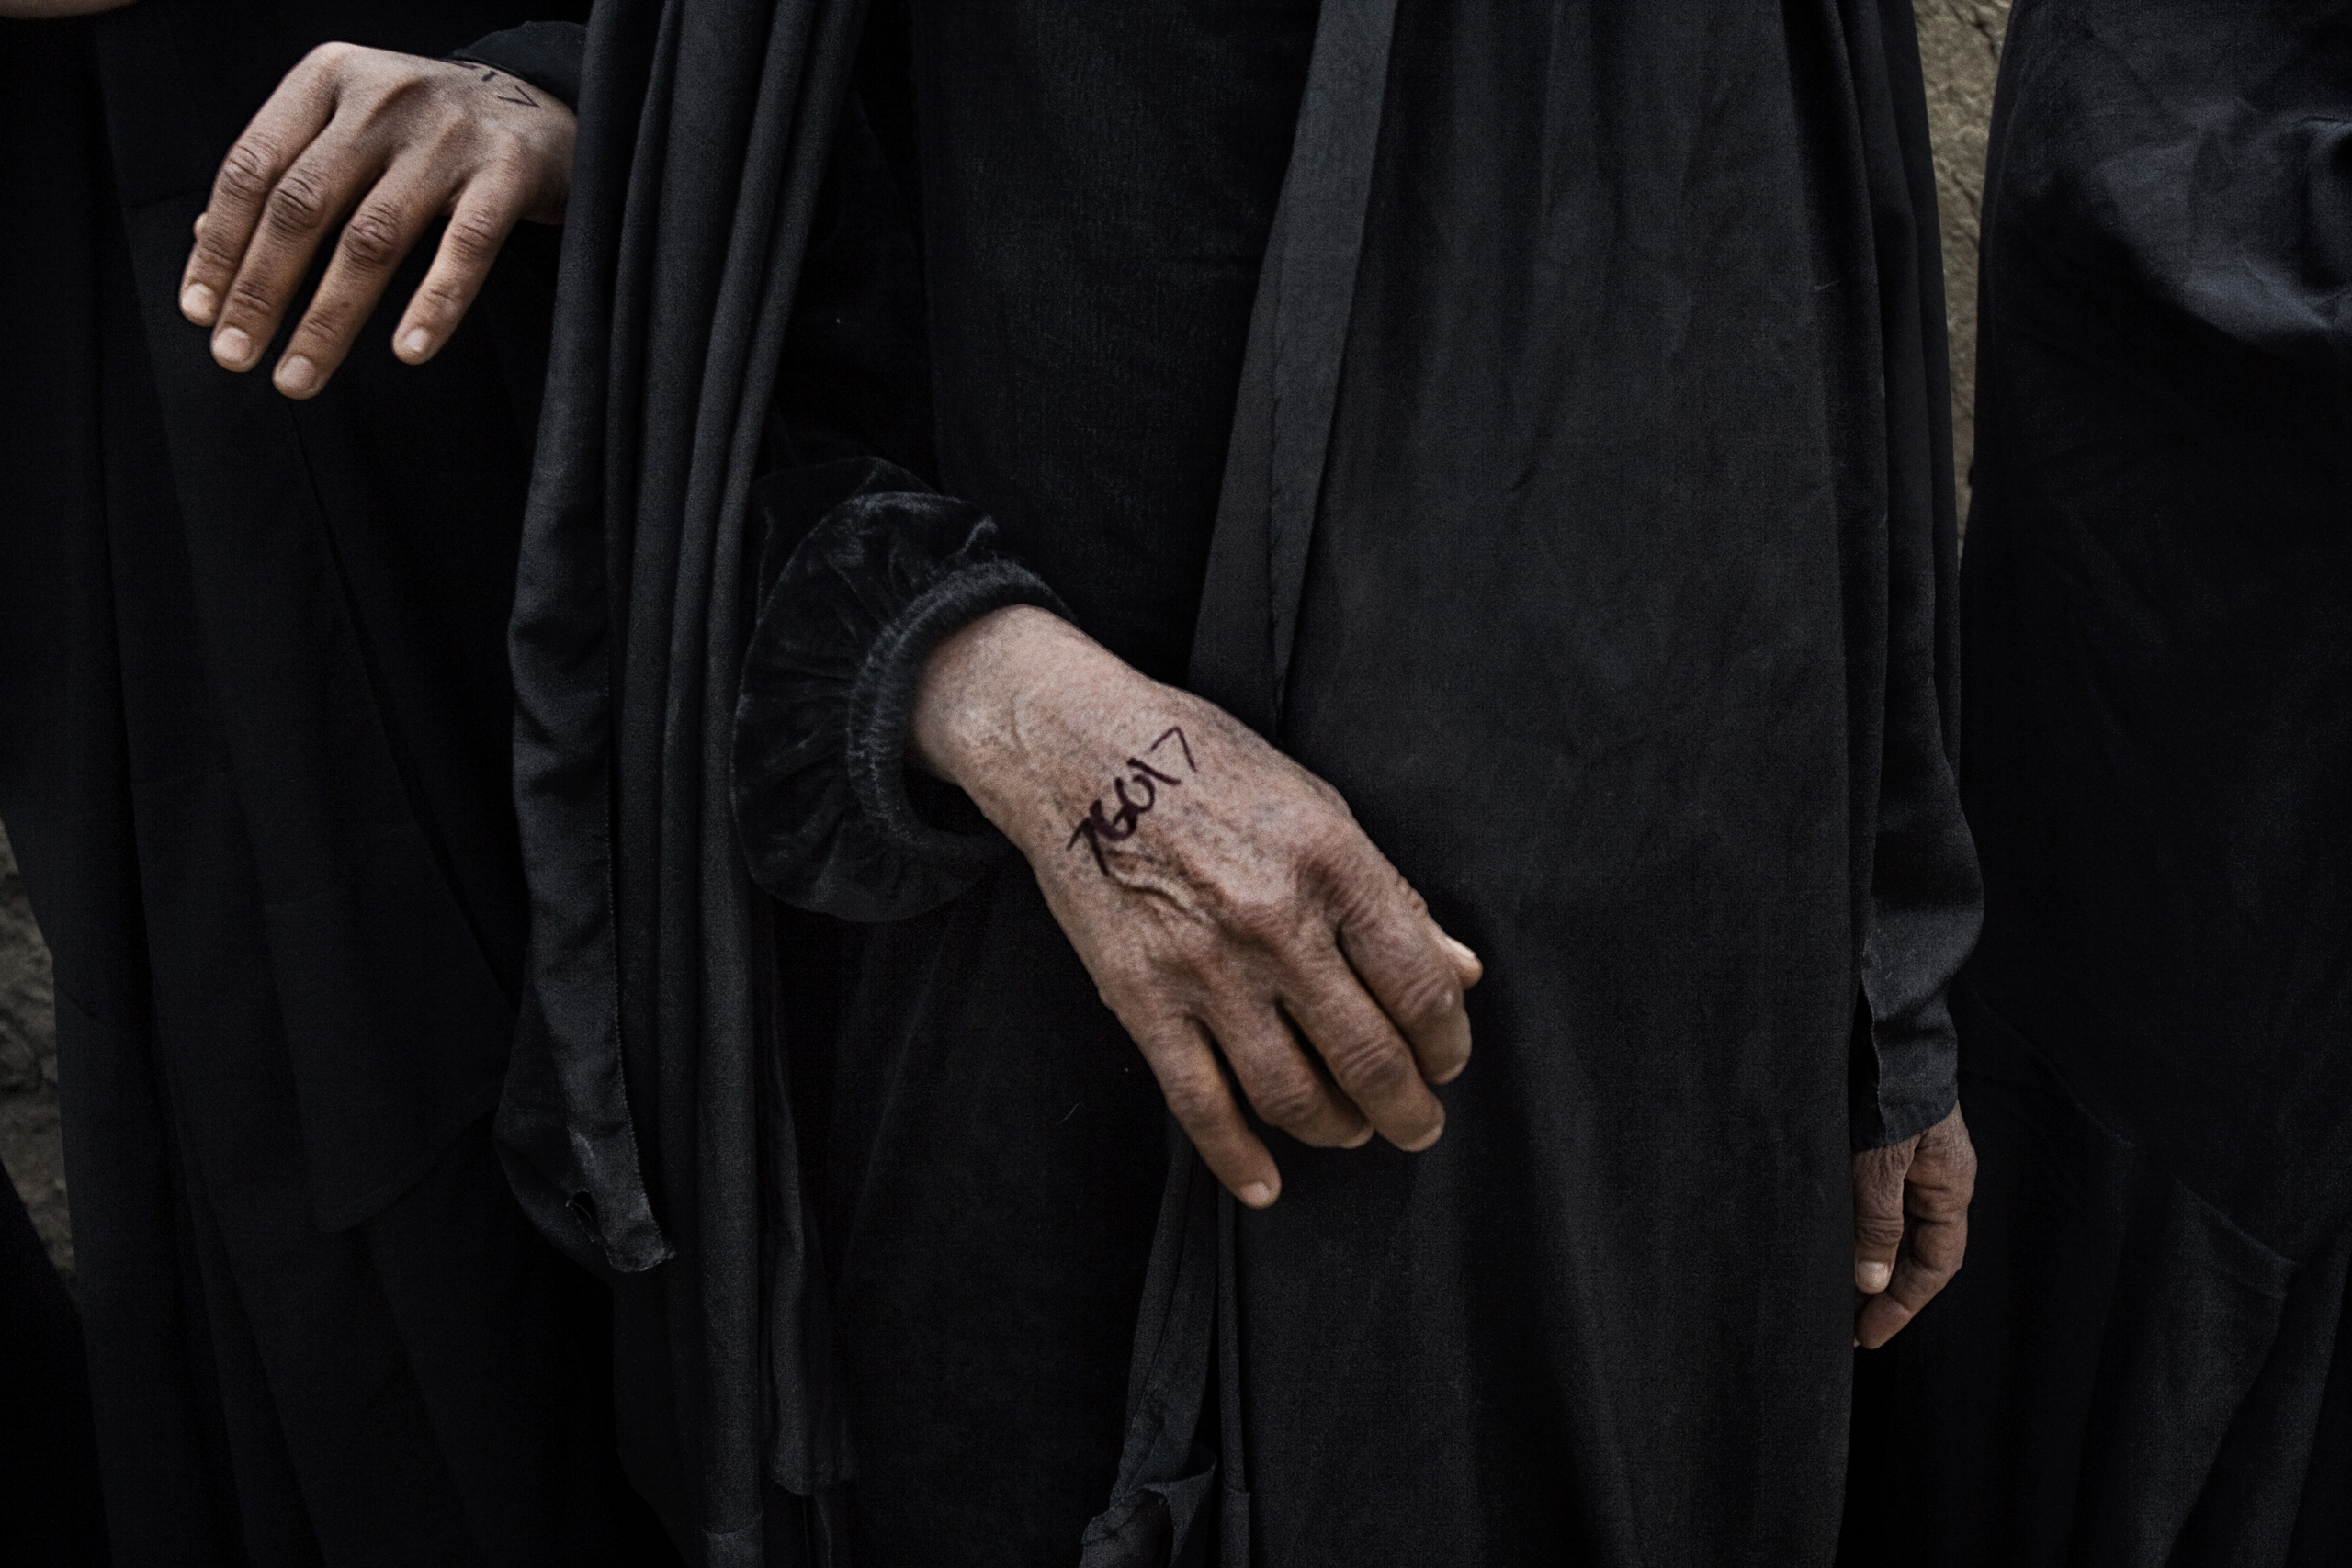 Numbers written on the hand of an Iraqi woman in Qubah, a village in Diyala Province, Iraq, March 24, 2007.